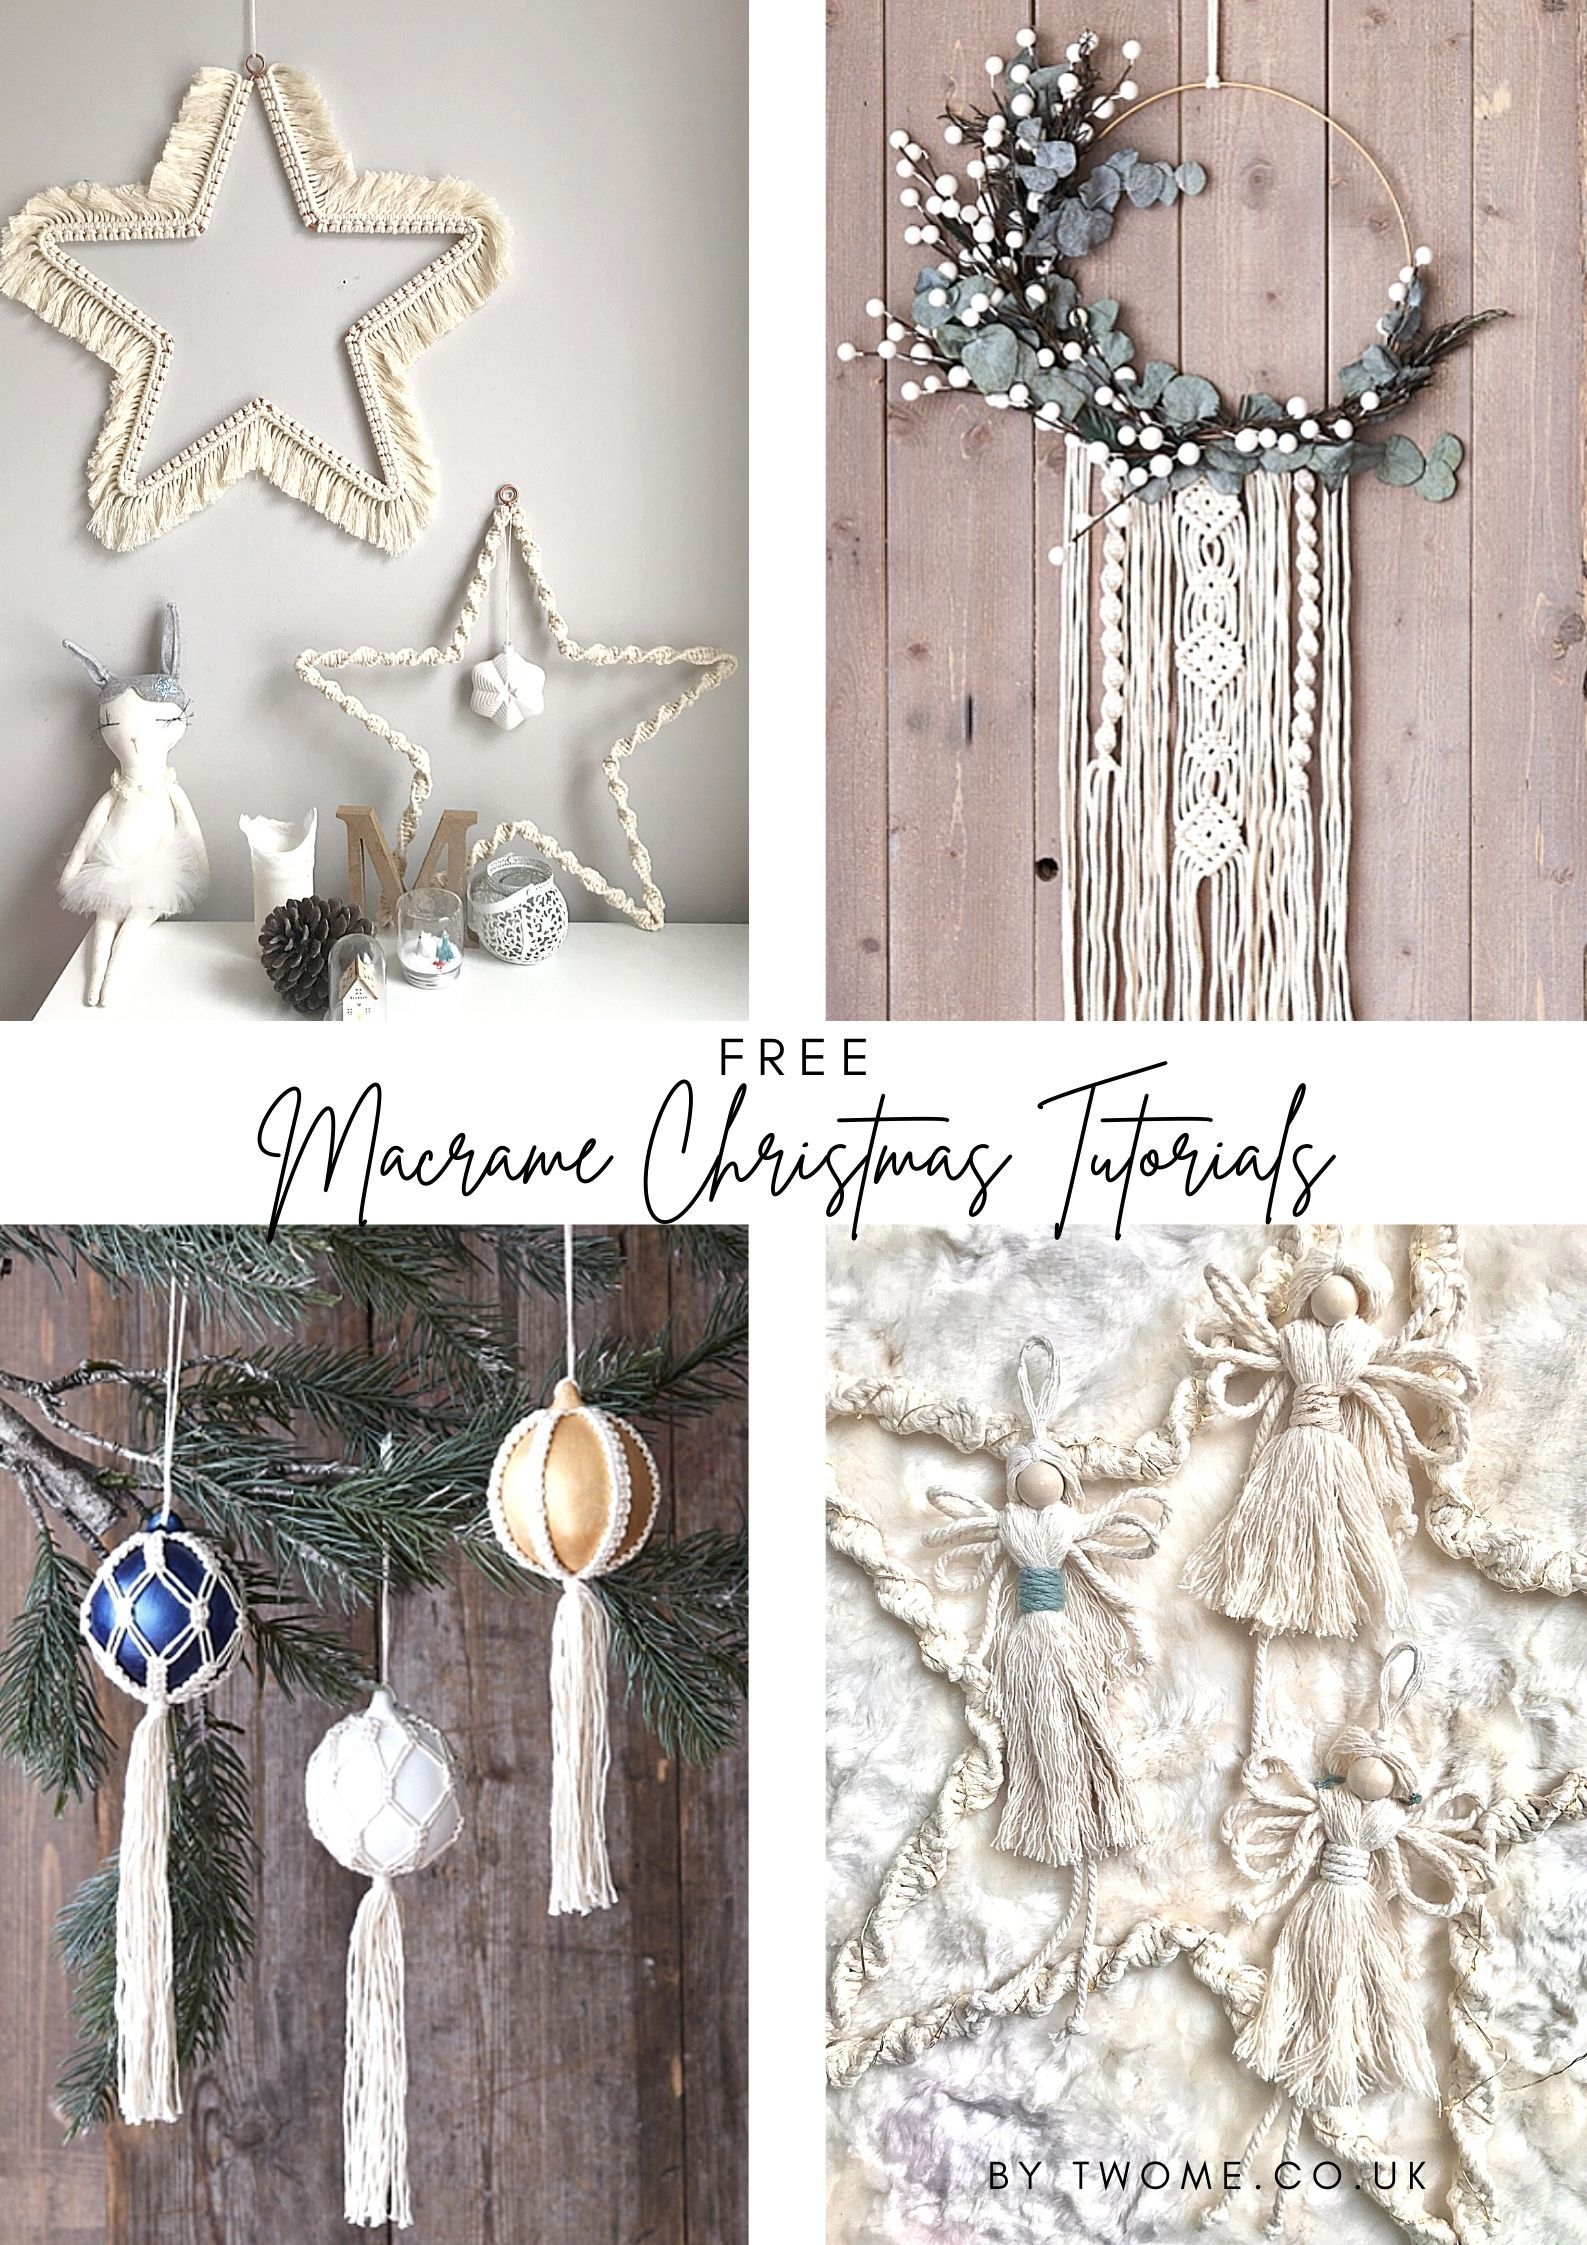 Another Christmas Here With You 2020 Free Macrame Christmas Patterns in 2020 | Macrame patterns, Crafts